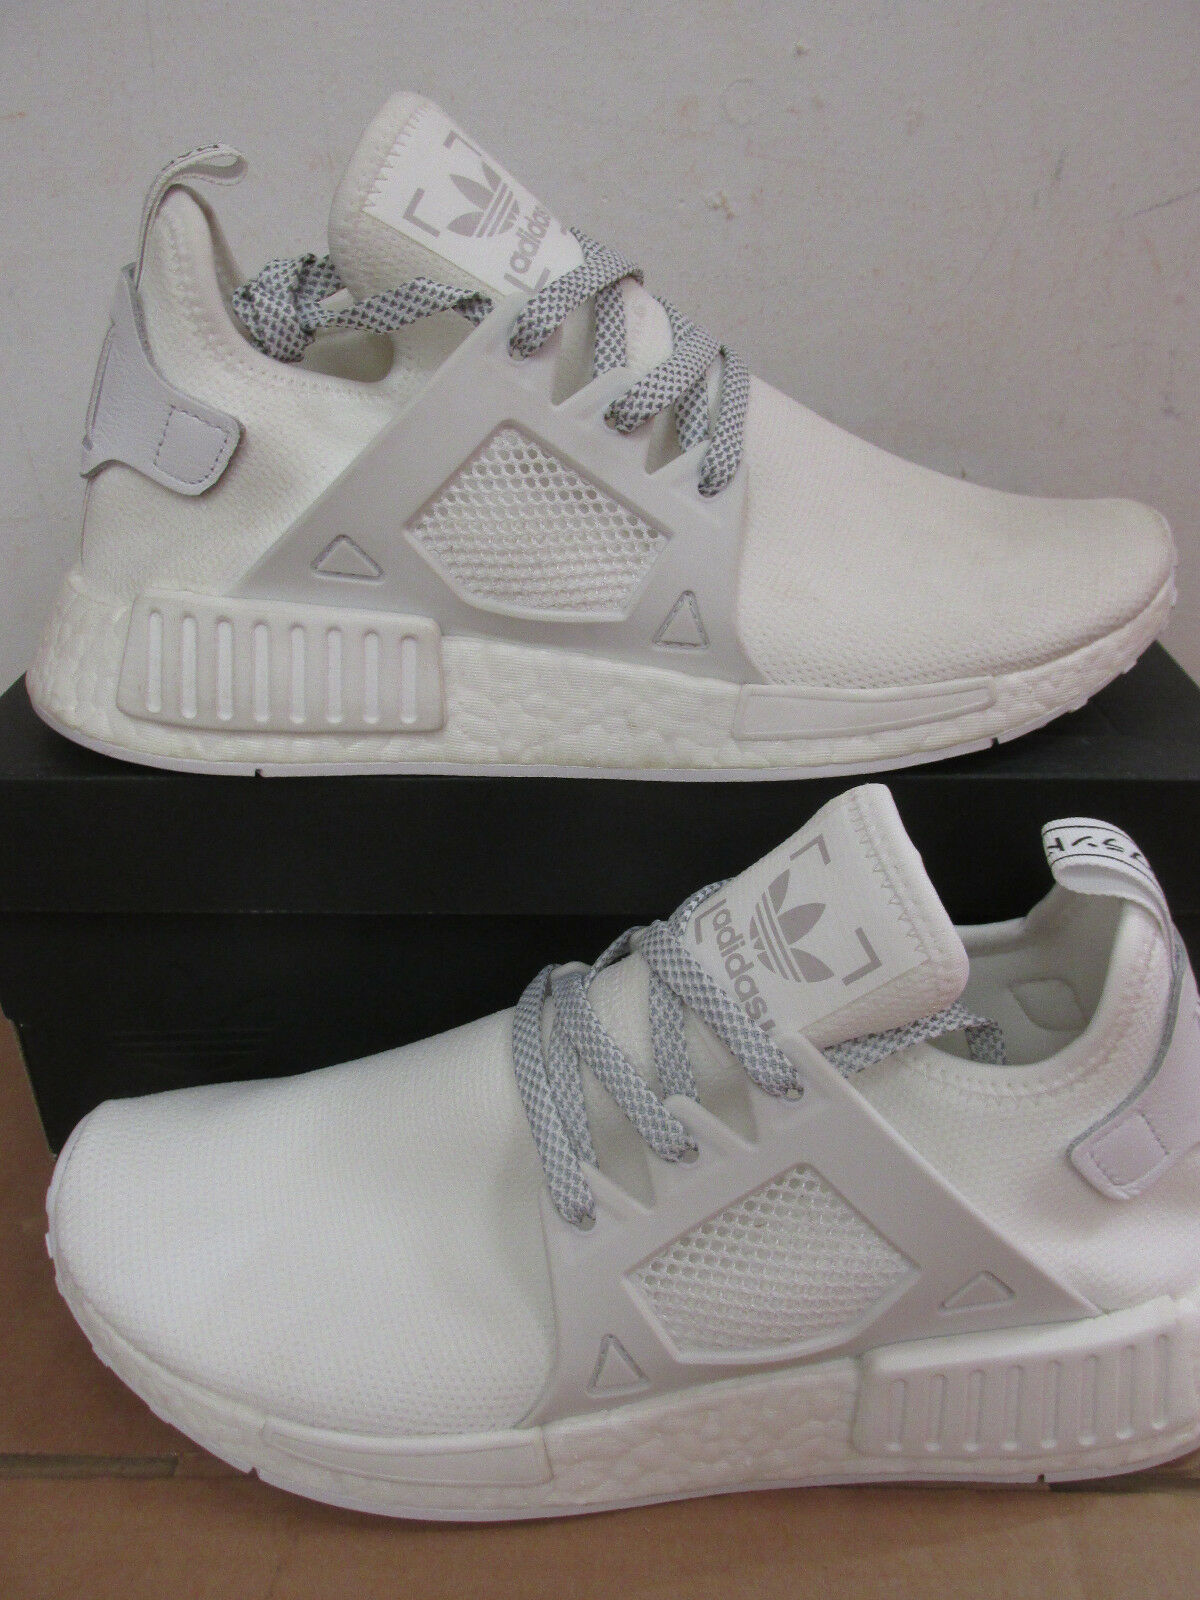 Adidas Originals NMD_XR1 BY3052 Mens Running Trainers Sneakers Schuhes CLEARANCE